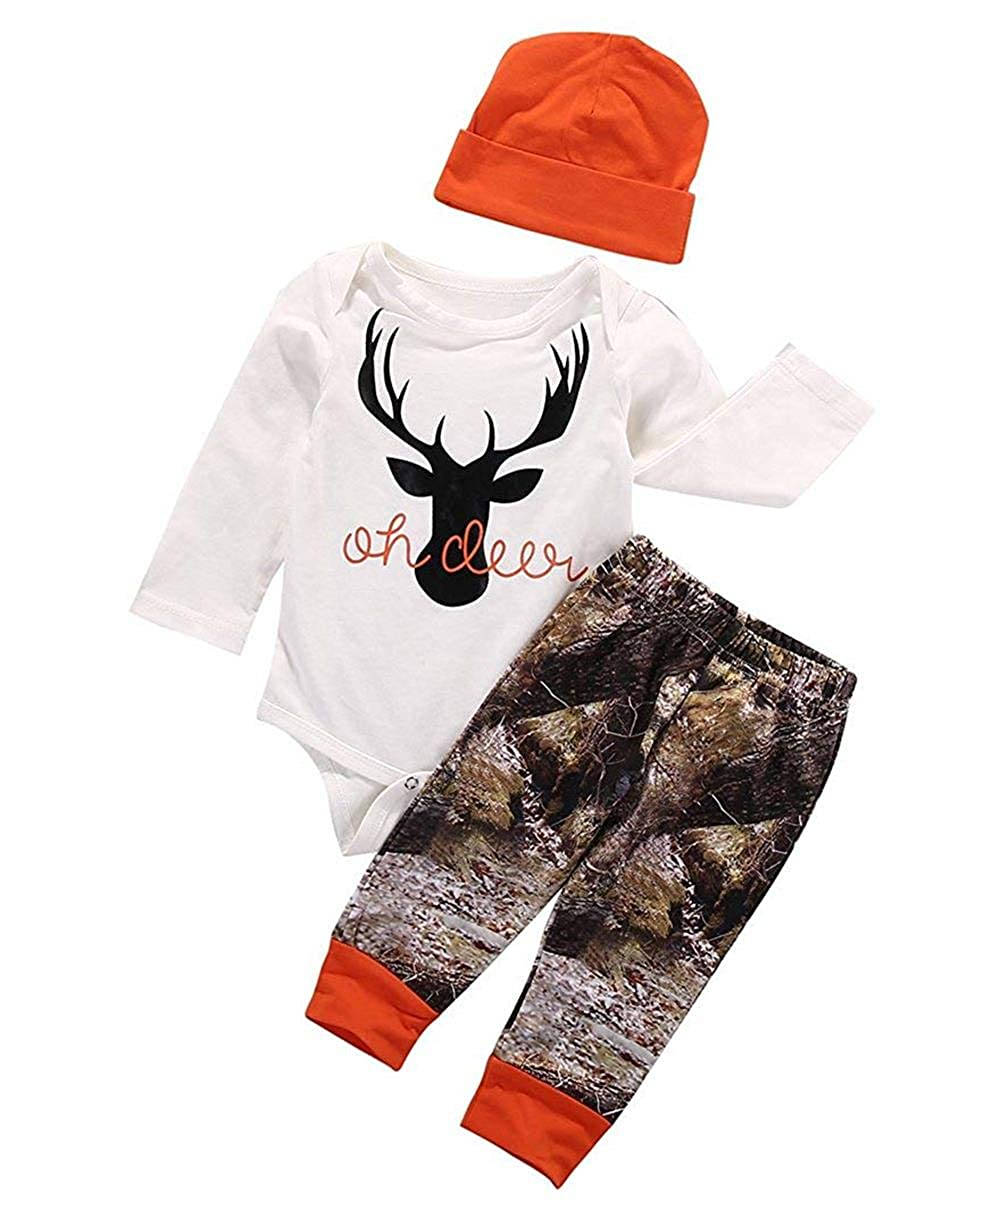 Newborn Baby Boy Clothes Crew Letter Print Romper+Long Pants+Hat 3PCS Outfits Set itkidboy